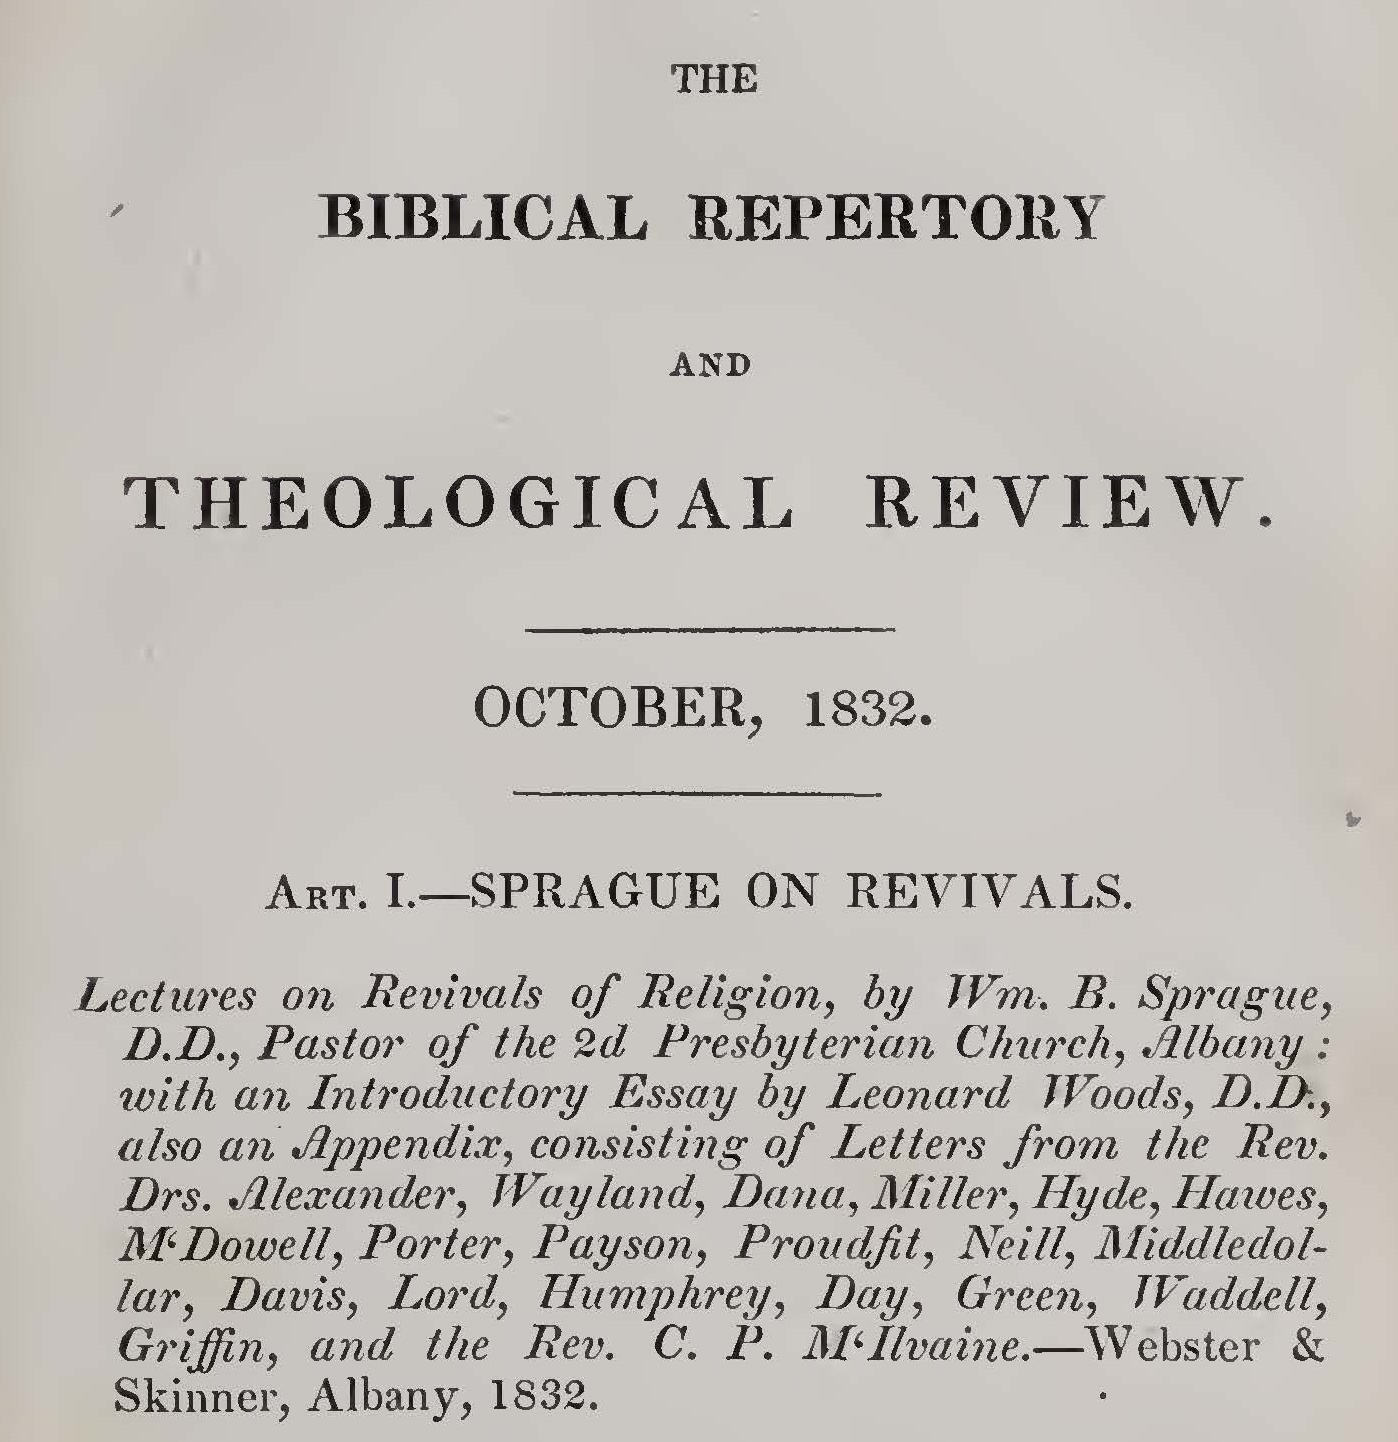 Breckinridge, John, Sprague on Revivals Title Page.jpg